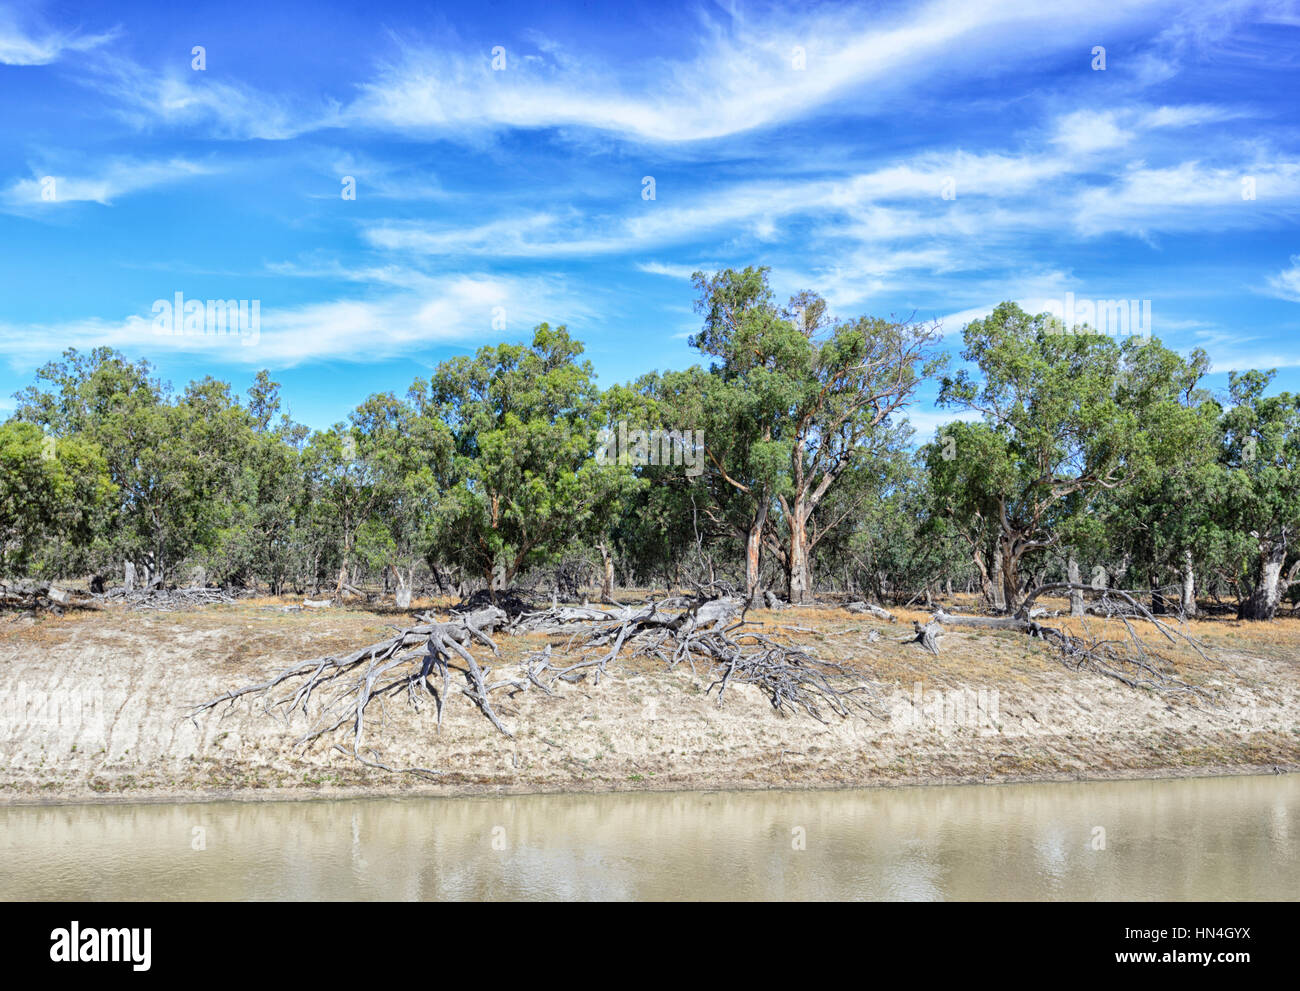 Gumtrees with exposed roots on the riverbank of the Darling River, Bindara Station, New South Wales, Australia - Stock Image